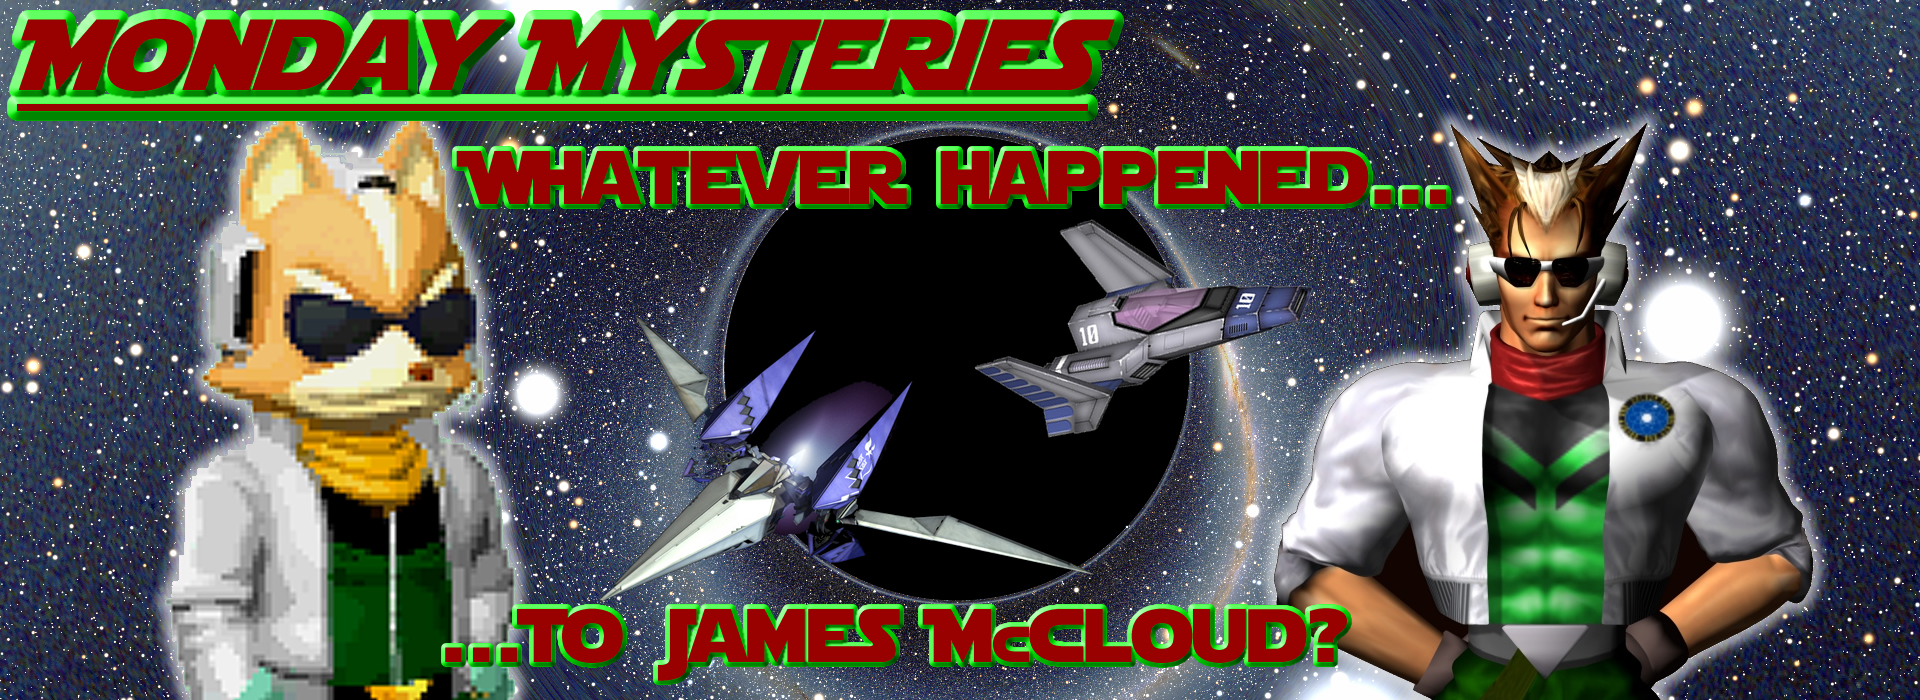 Whatever Happend to James McCloud Banner